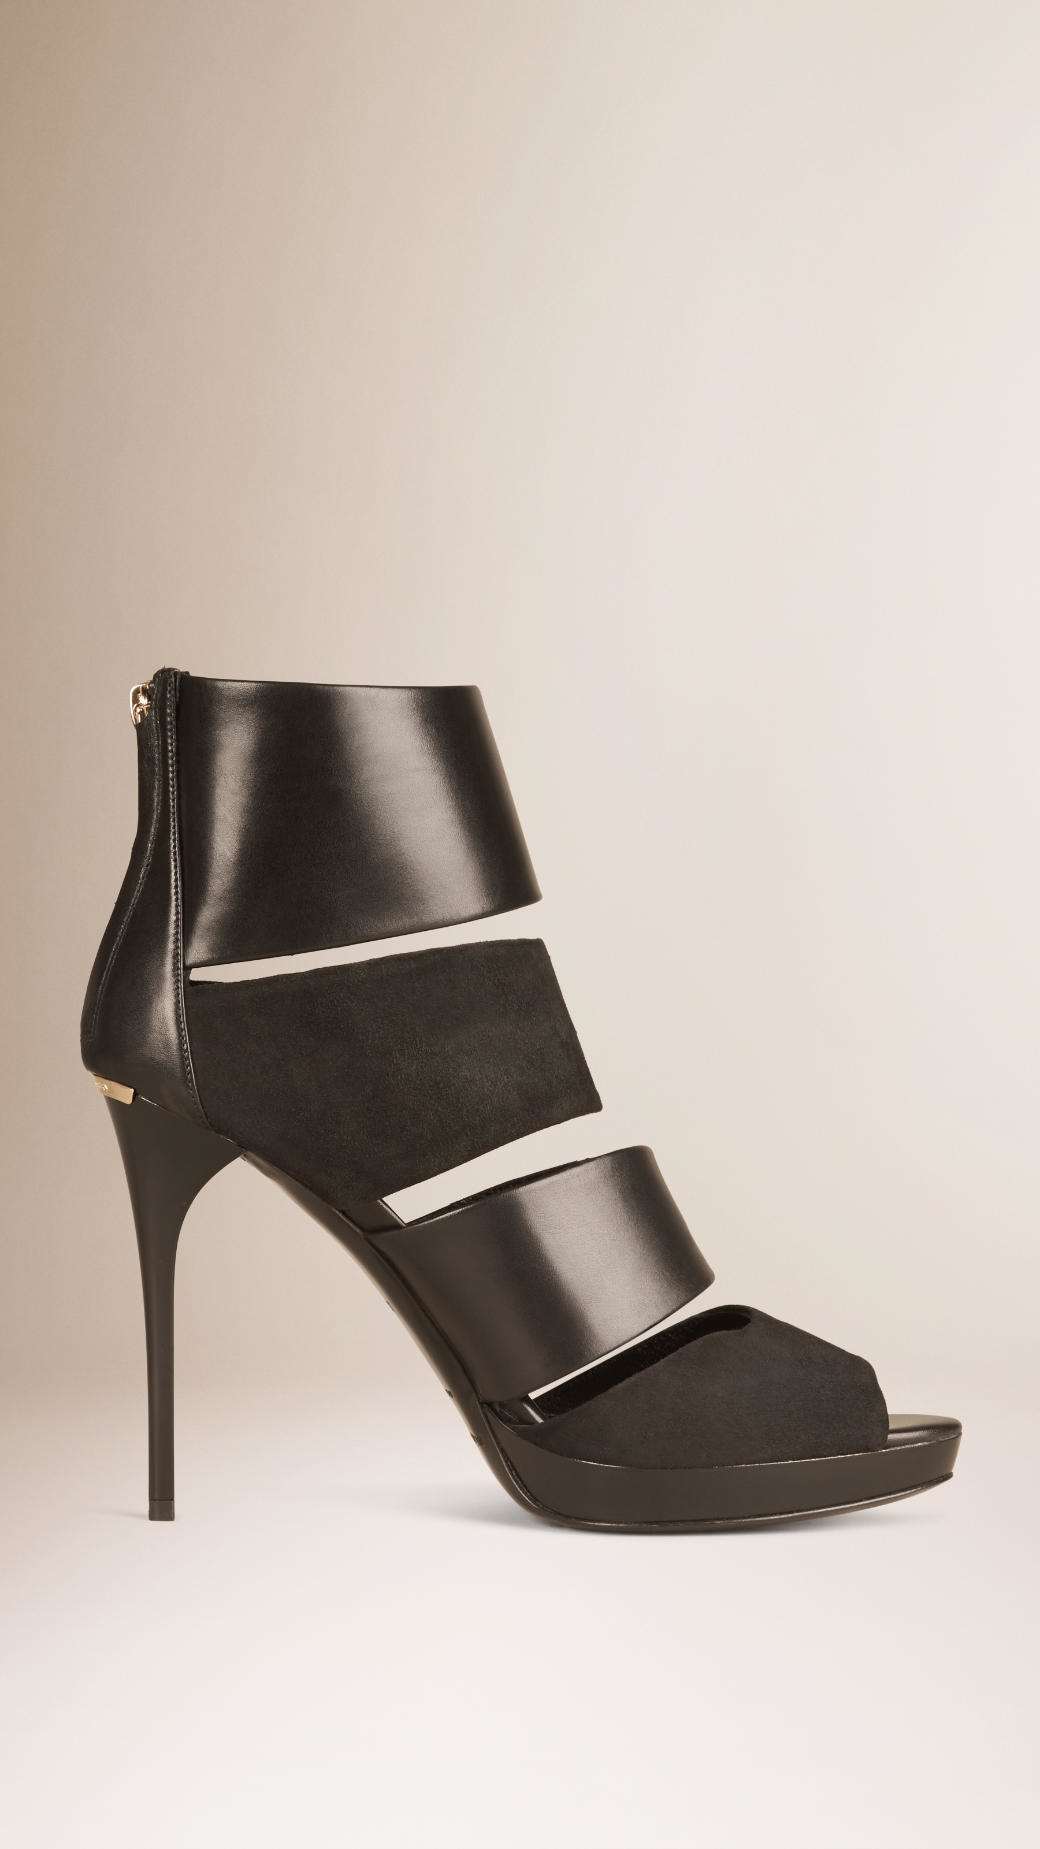 Burberry Leather Multistrap Ankle Boots 100% original jPjyNLiW